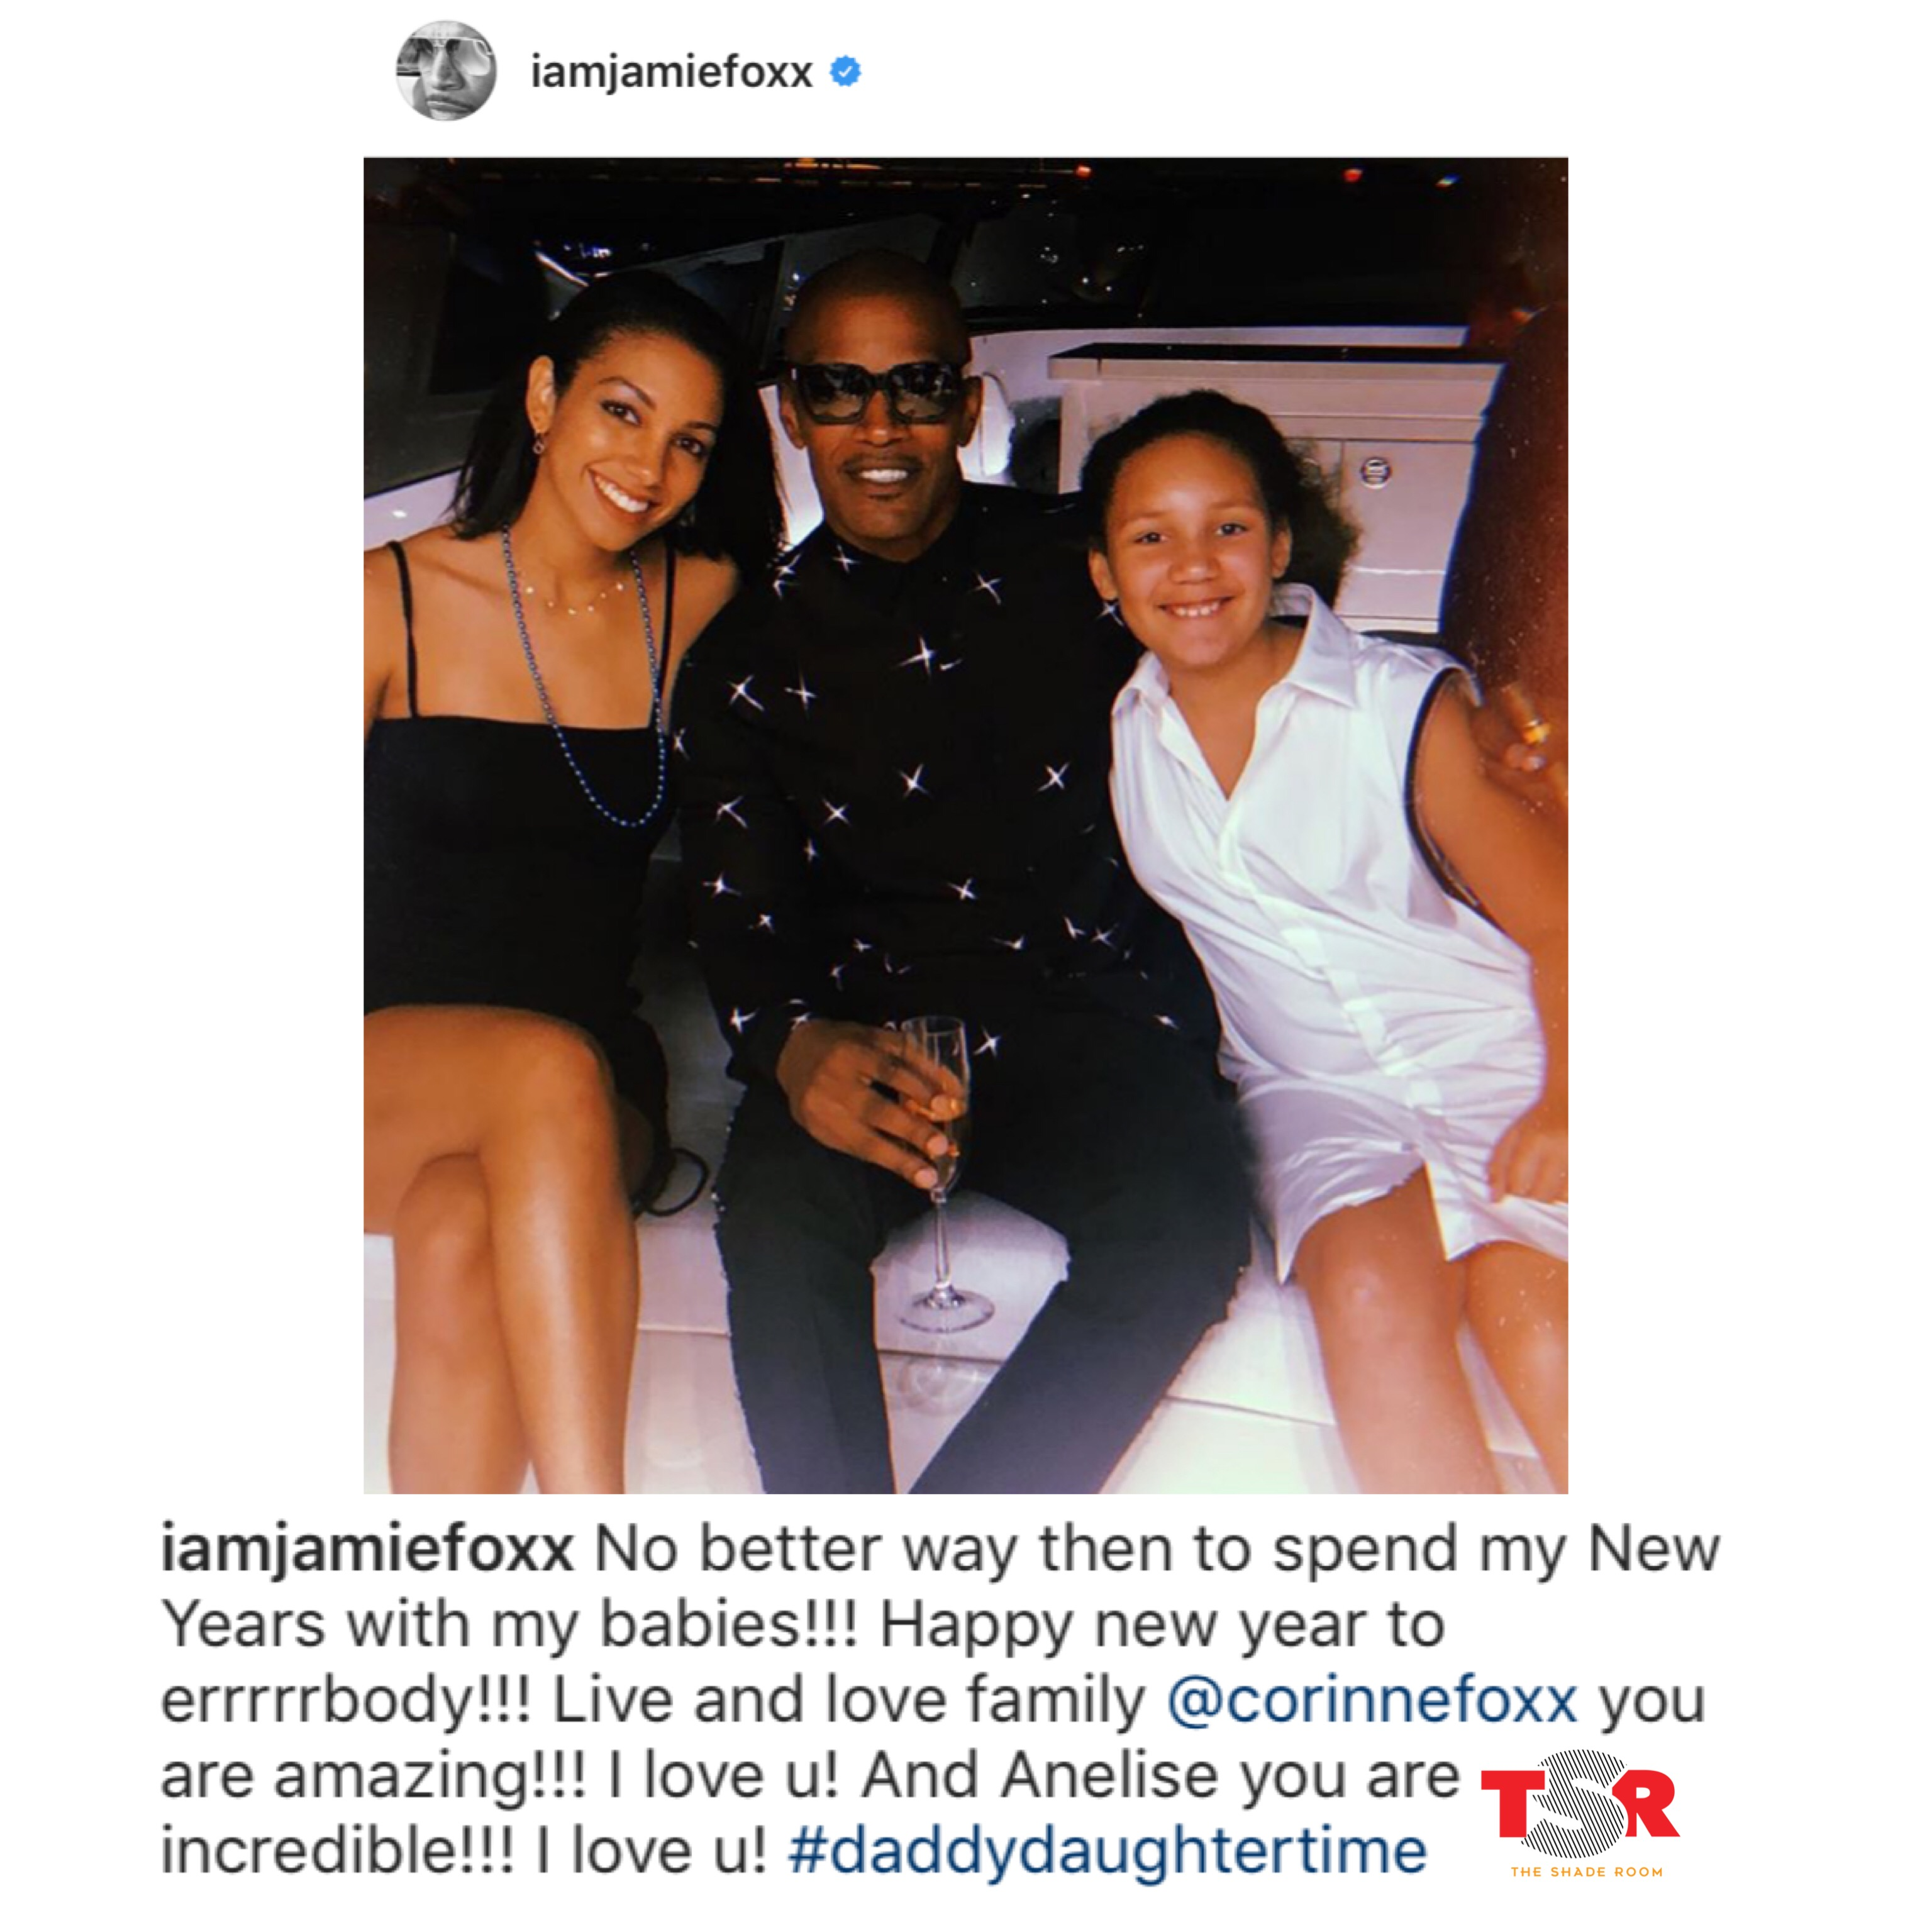 Jamie Foxx Celebrates The New Year With His Daughters